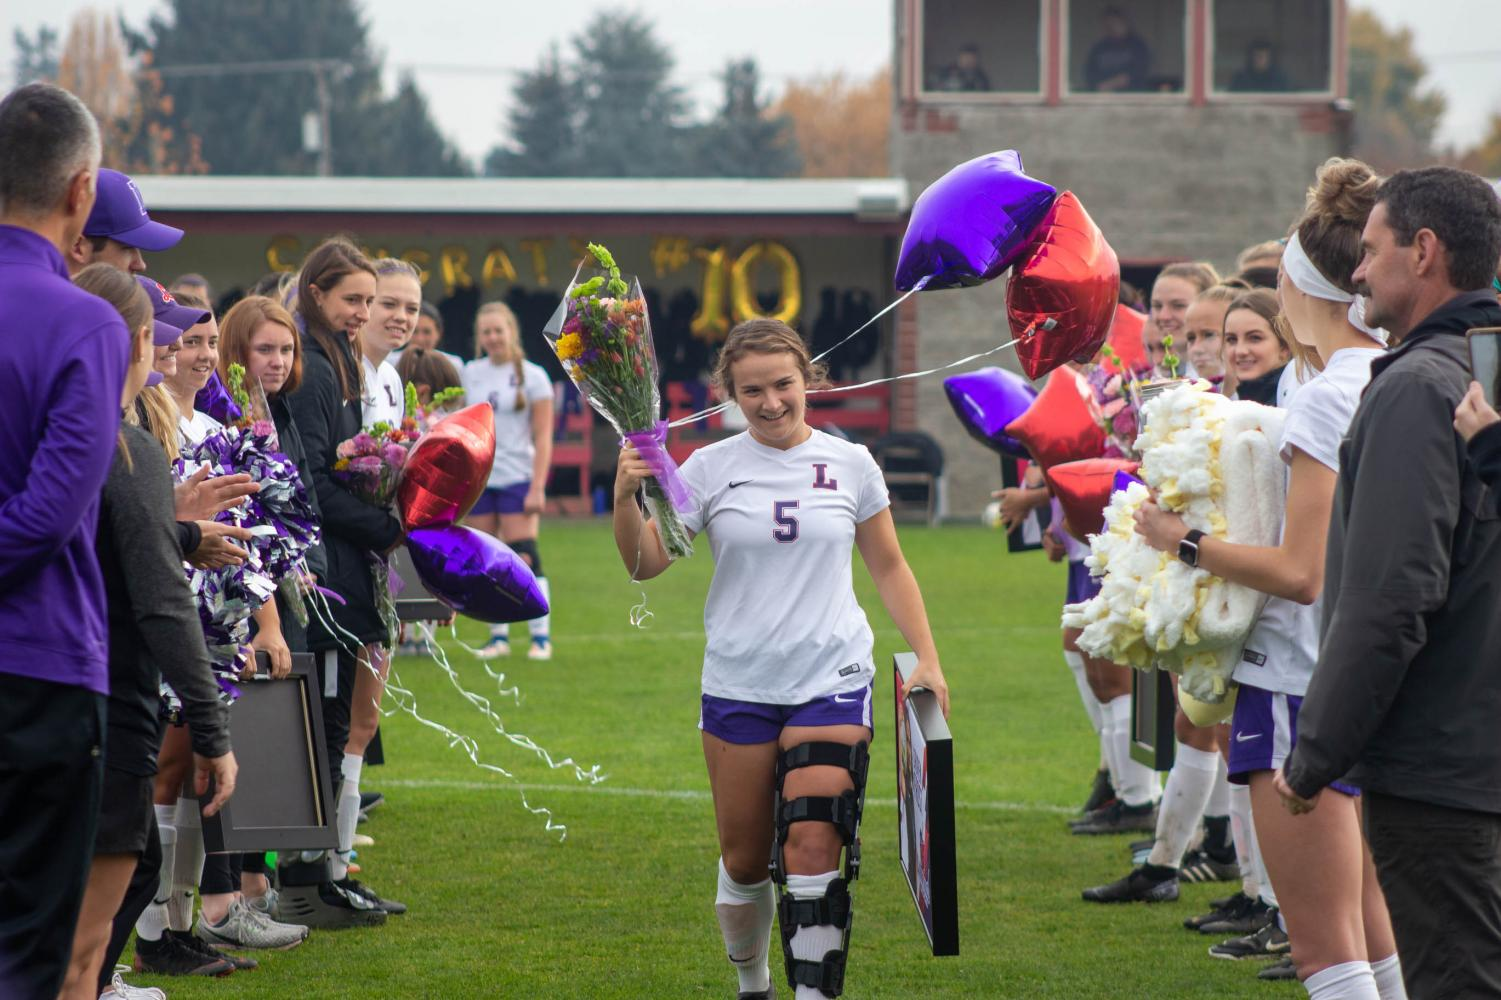 Senior Lauren Frost walking down the field for her final soccer game at Linfield College.